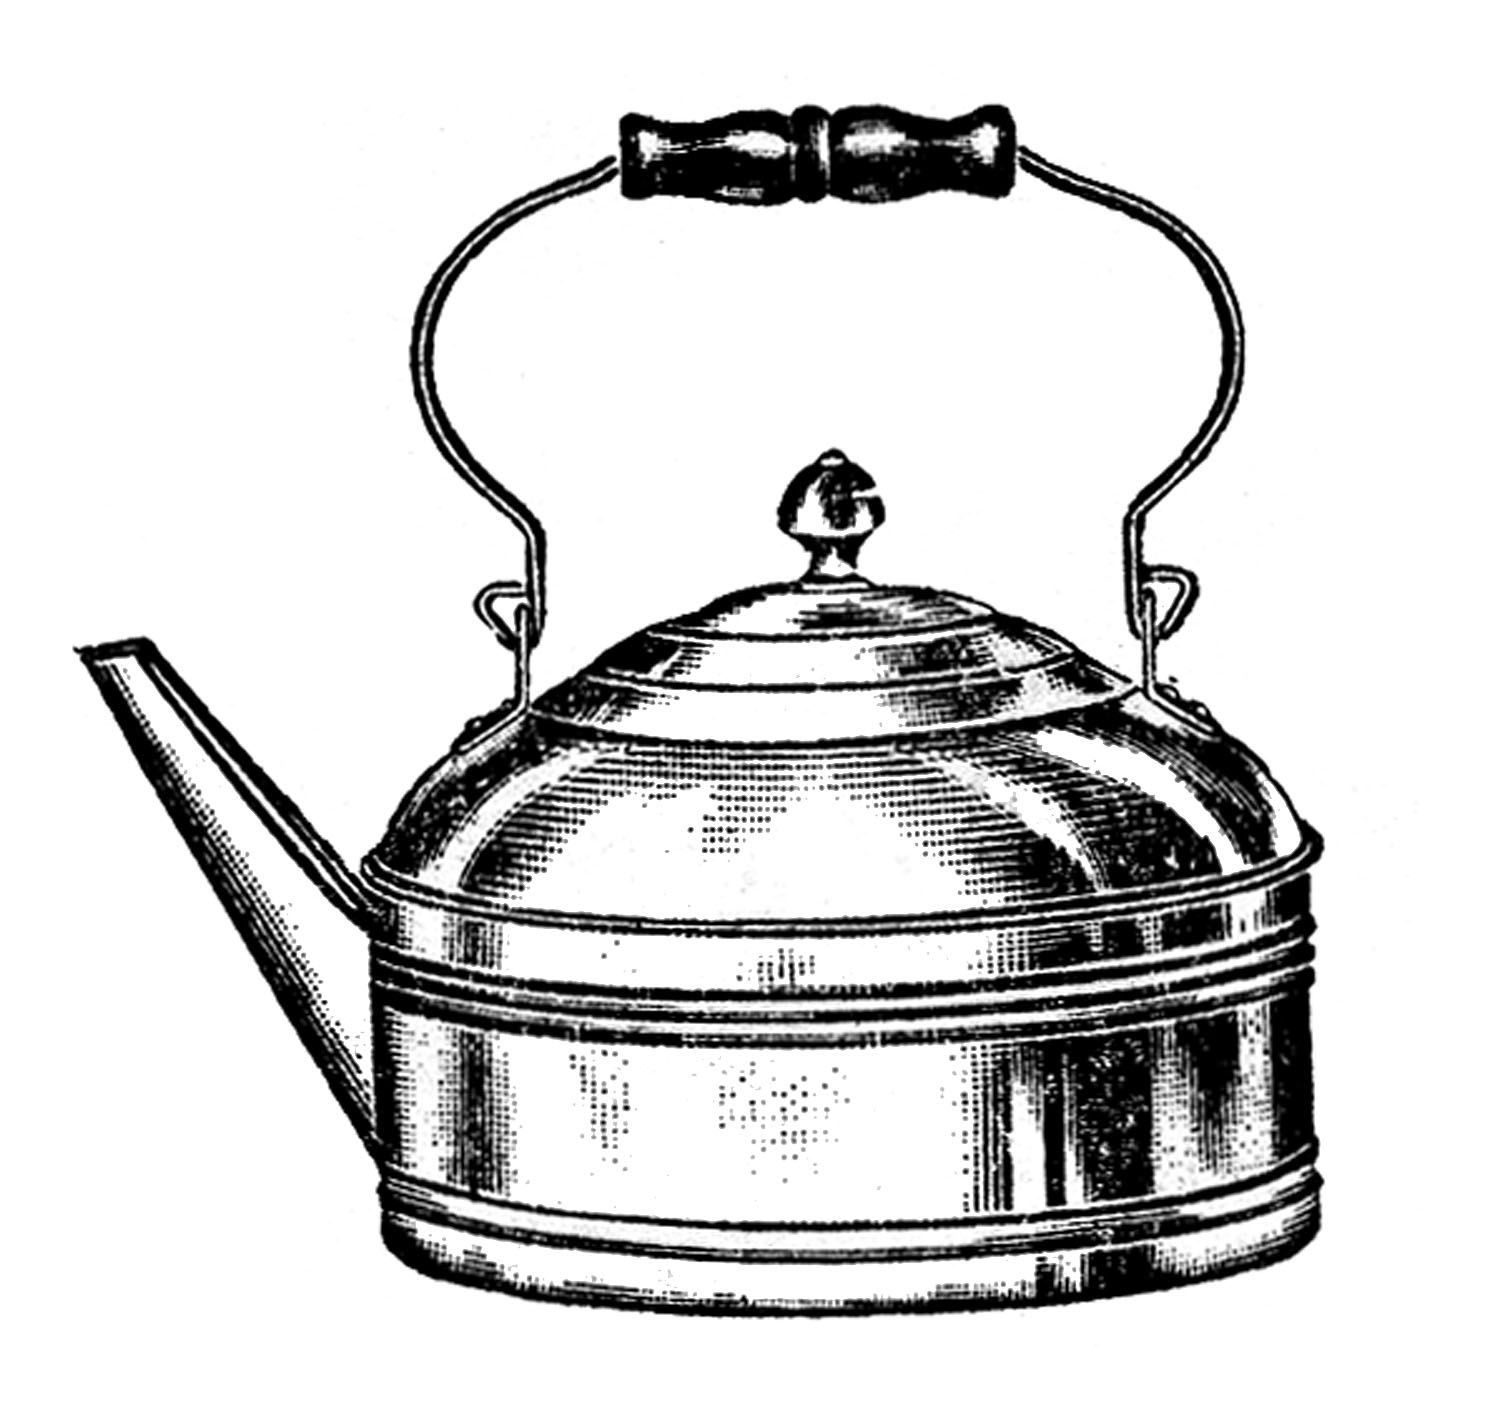 1500x1402 overlapping drawing kitchen object for free download